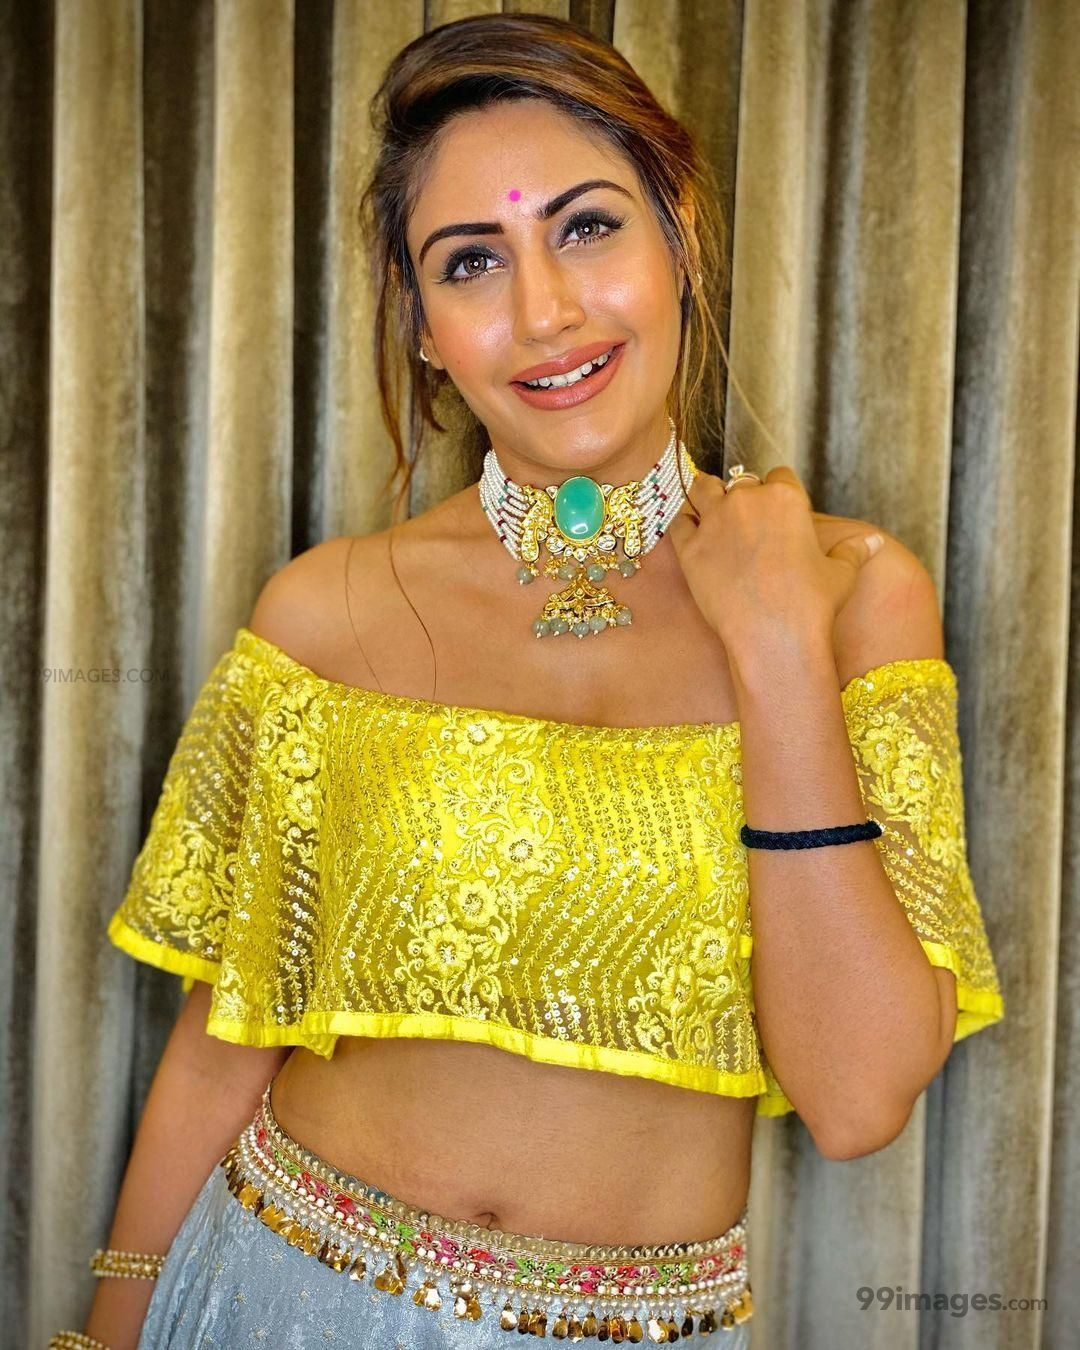 Surbhi Chandna  Hot HD Photos & Wallpapers for mobile Download, WhatsApp DP (1080p) (641042) - Surbhi Chandna